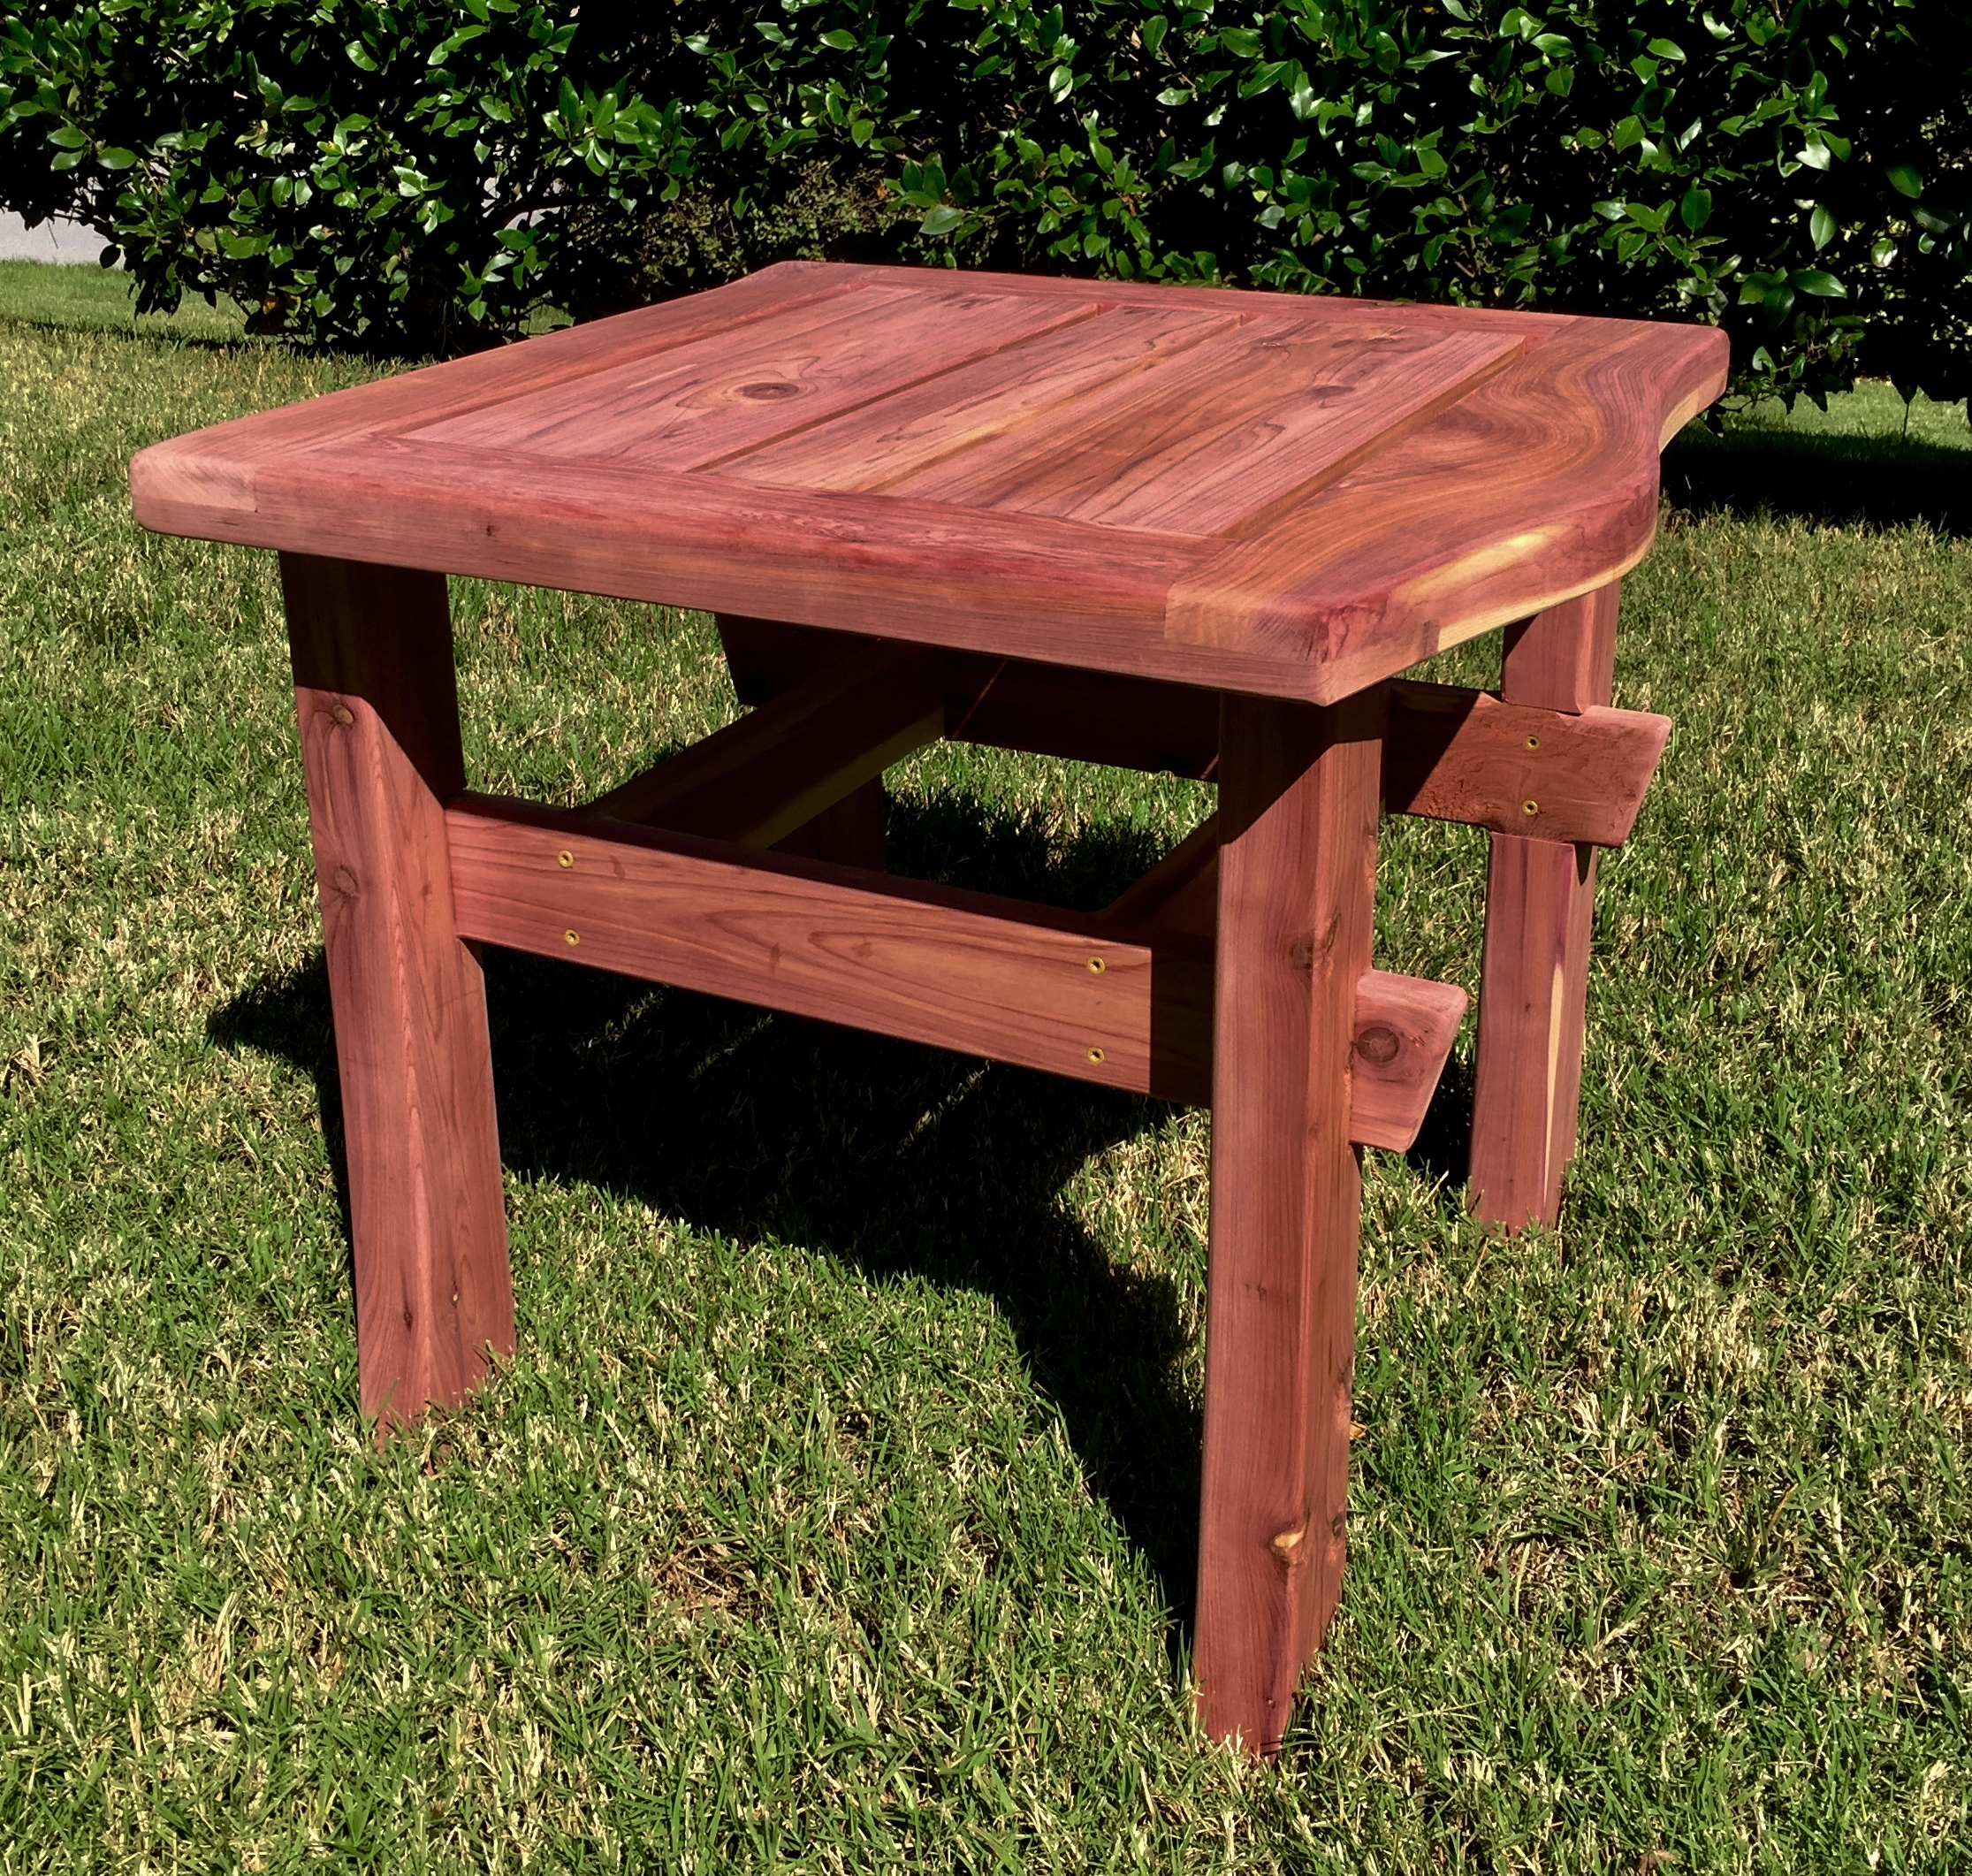 Cedar Garden Tables - Designed to pair with outdoor benches, cedar garden tables can take varied shapes - square, rectangular, circular or free-form - whatever suits your style.